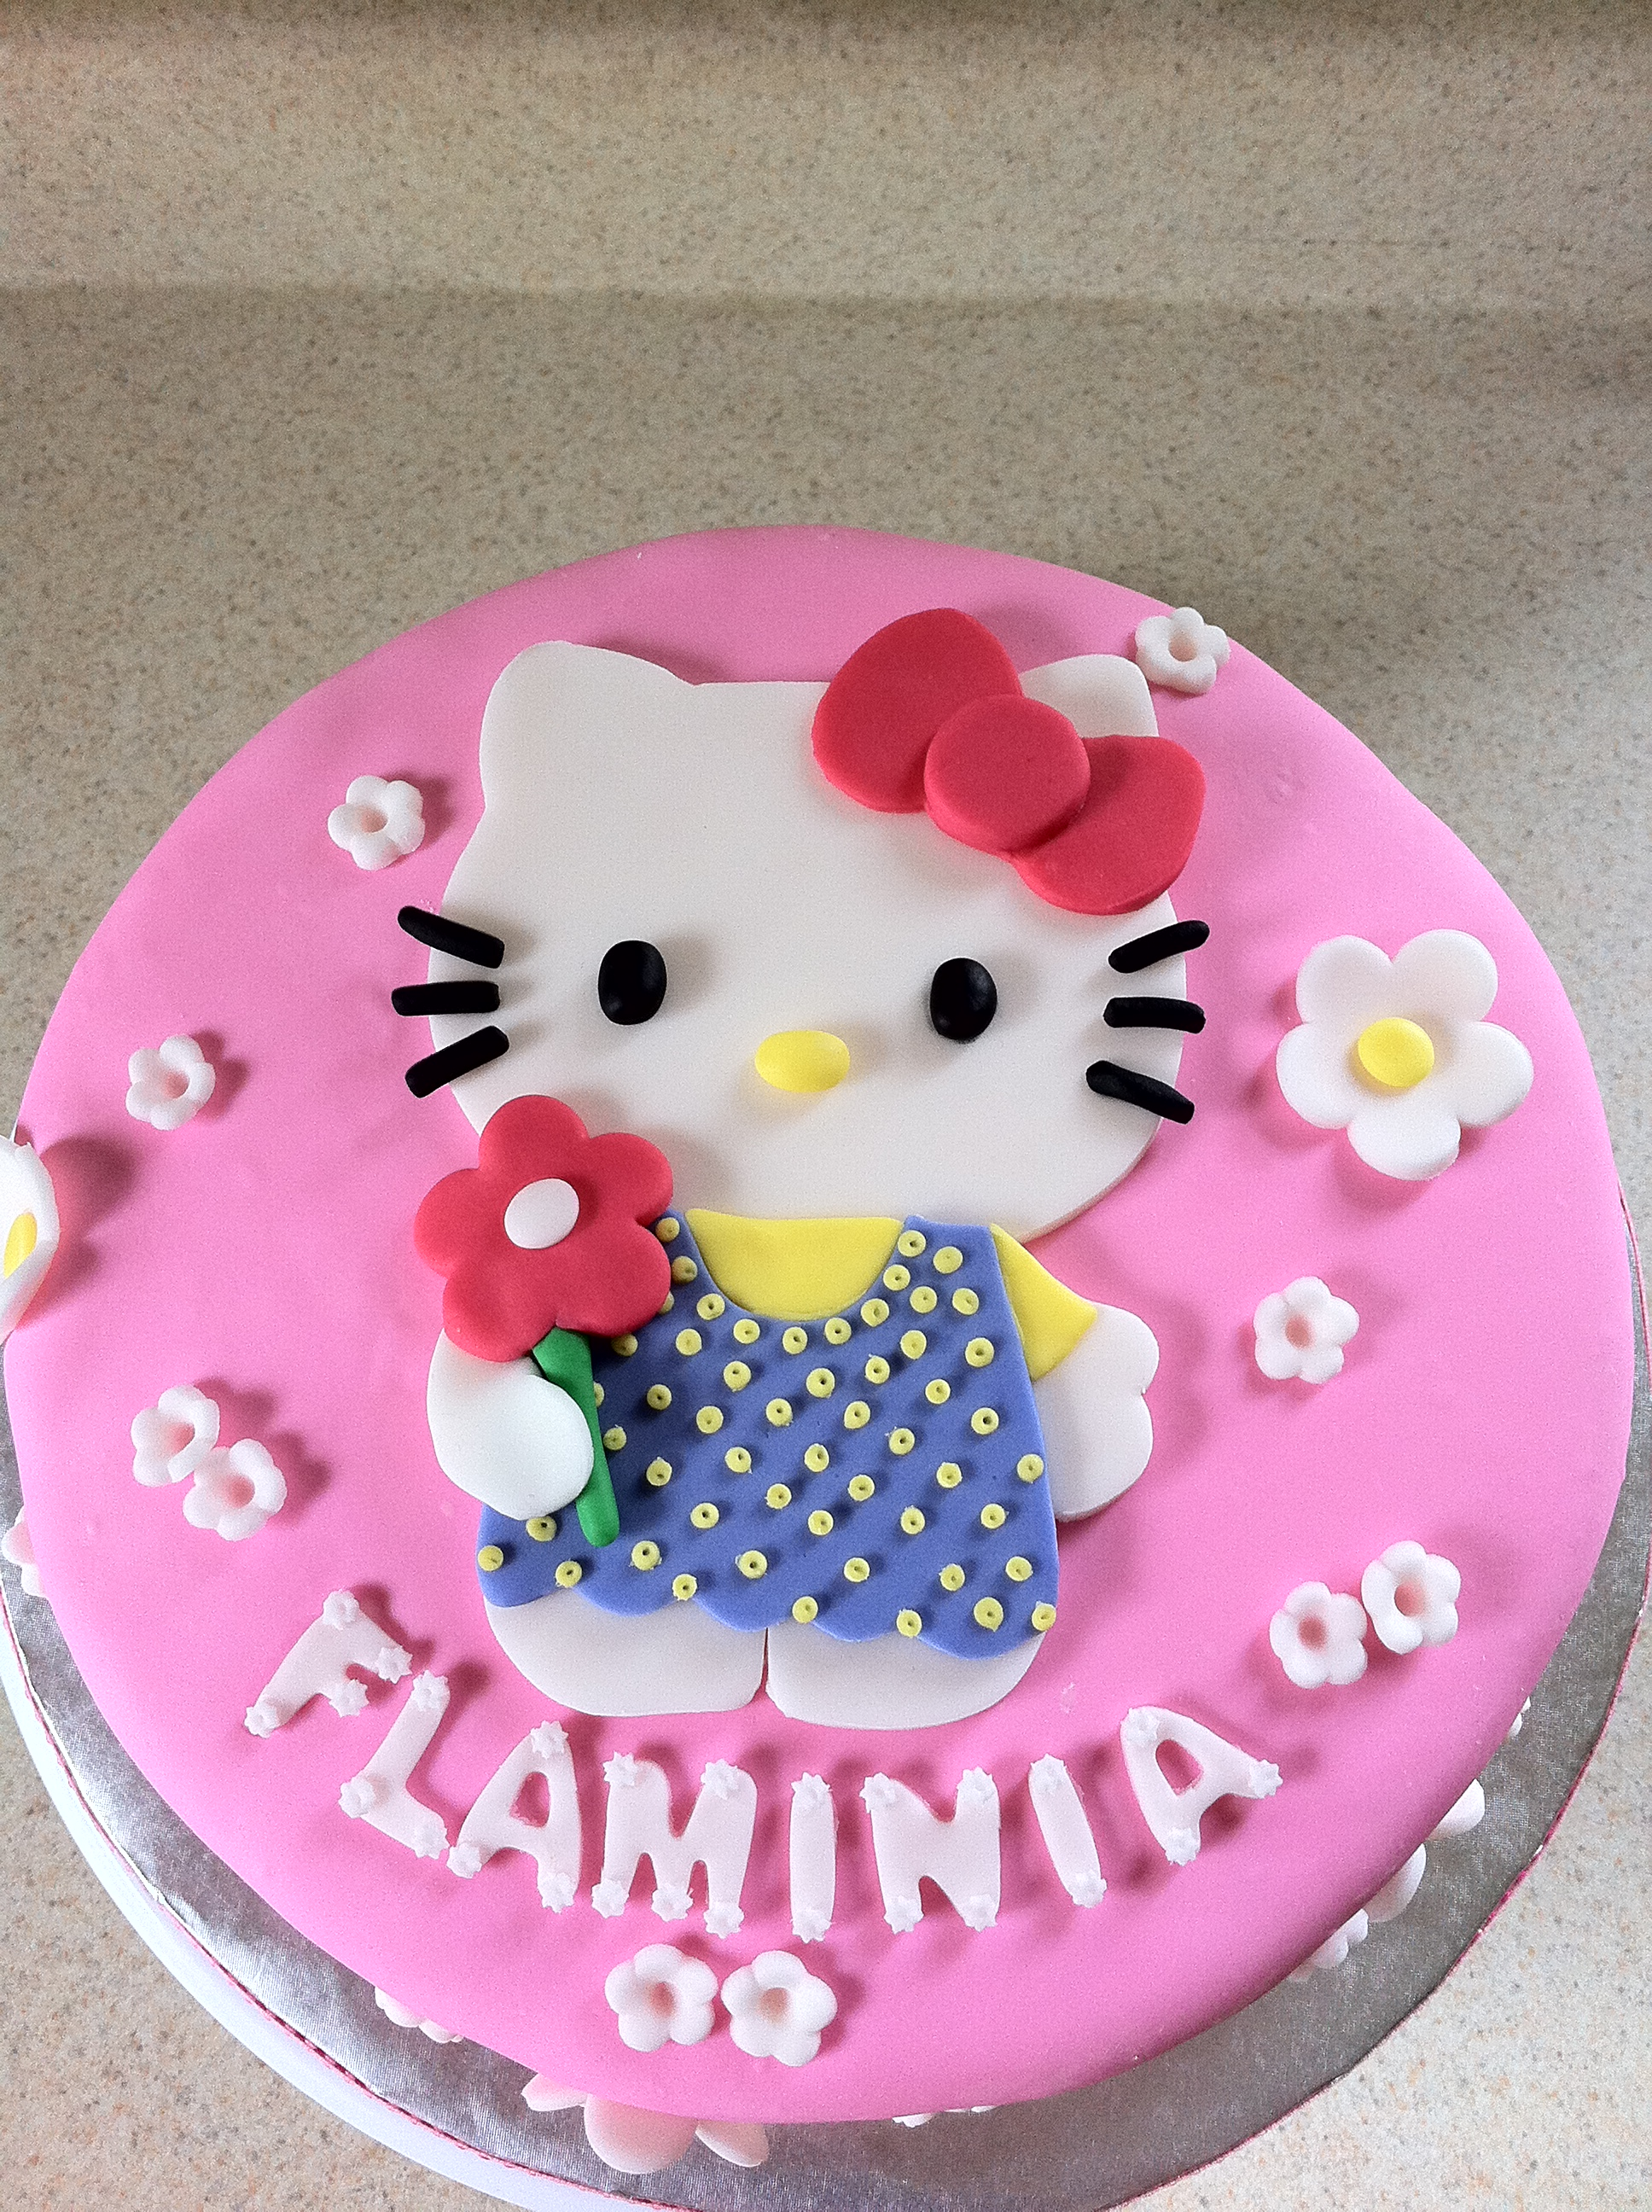 Pink Hello Kitty birthday cake – Lolos Cakes & Sweets